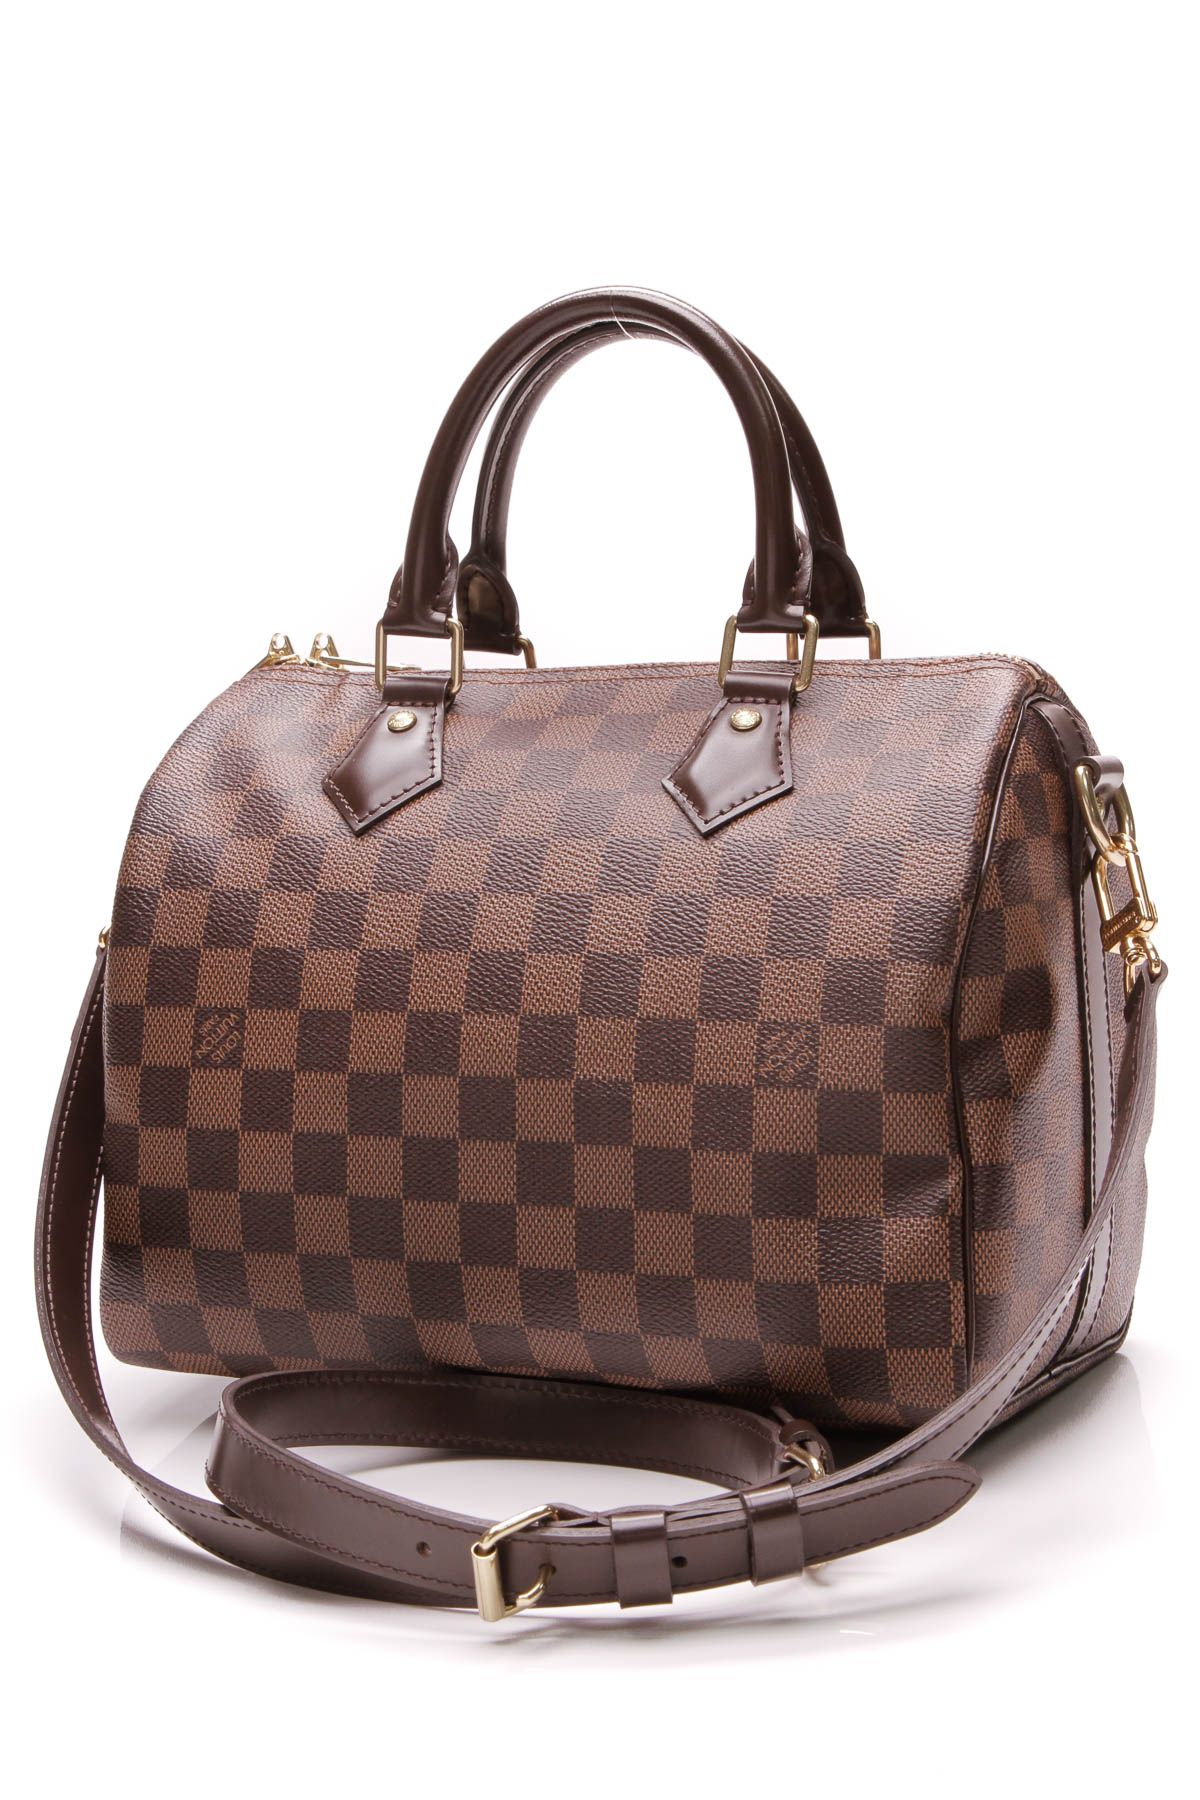 4afae3013b8a Louis Vuitton Speedy 25 Bandouliere Bag - Damier Ebene  795 preloved  fashionphile